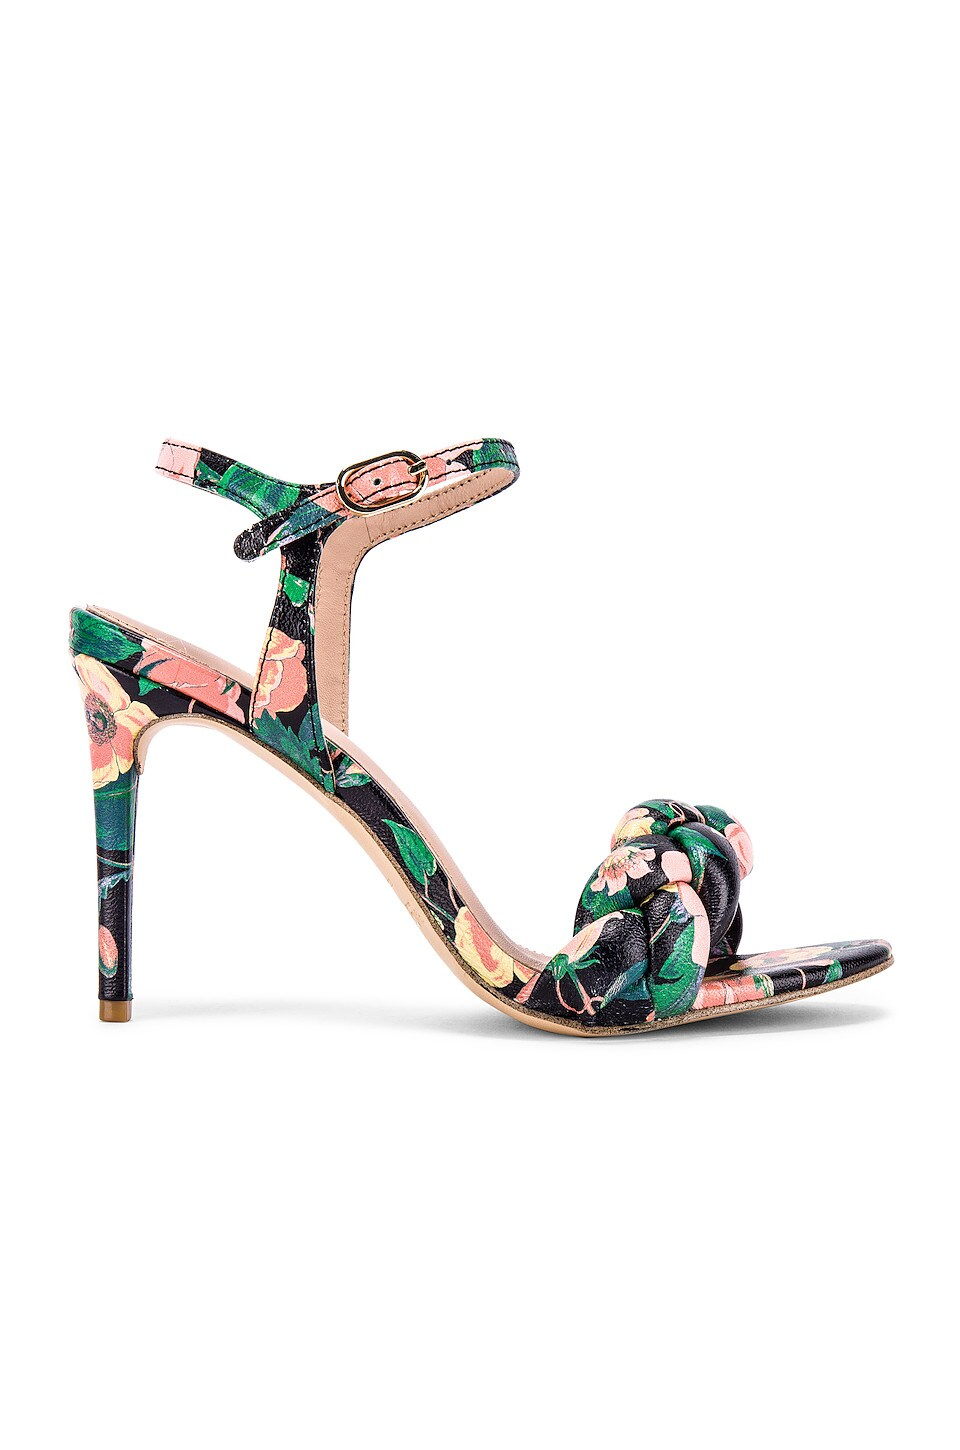 RACHEL ZOE Kelly Braid Sandal in Black Floral